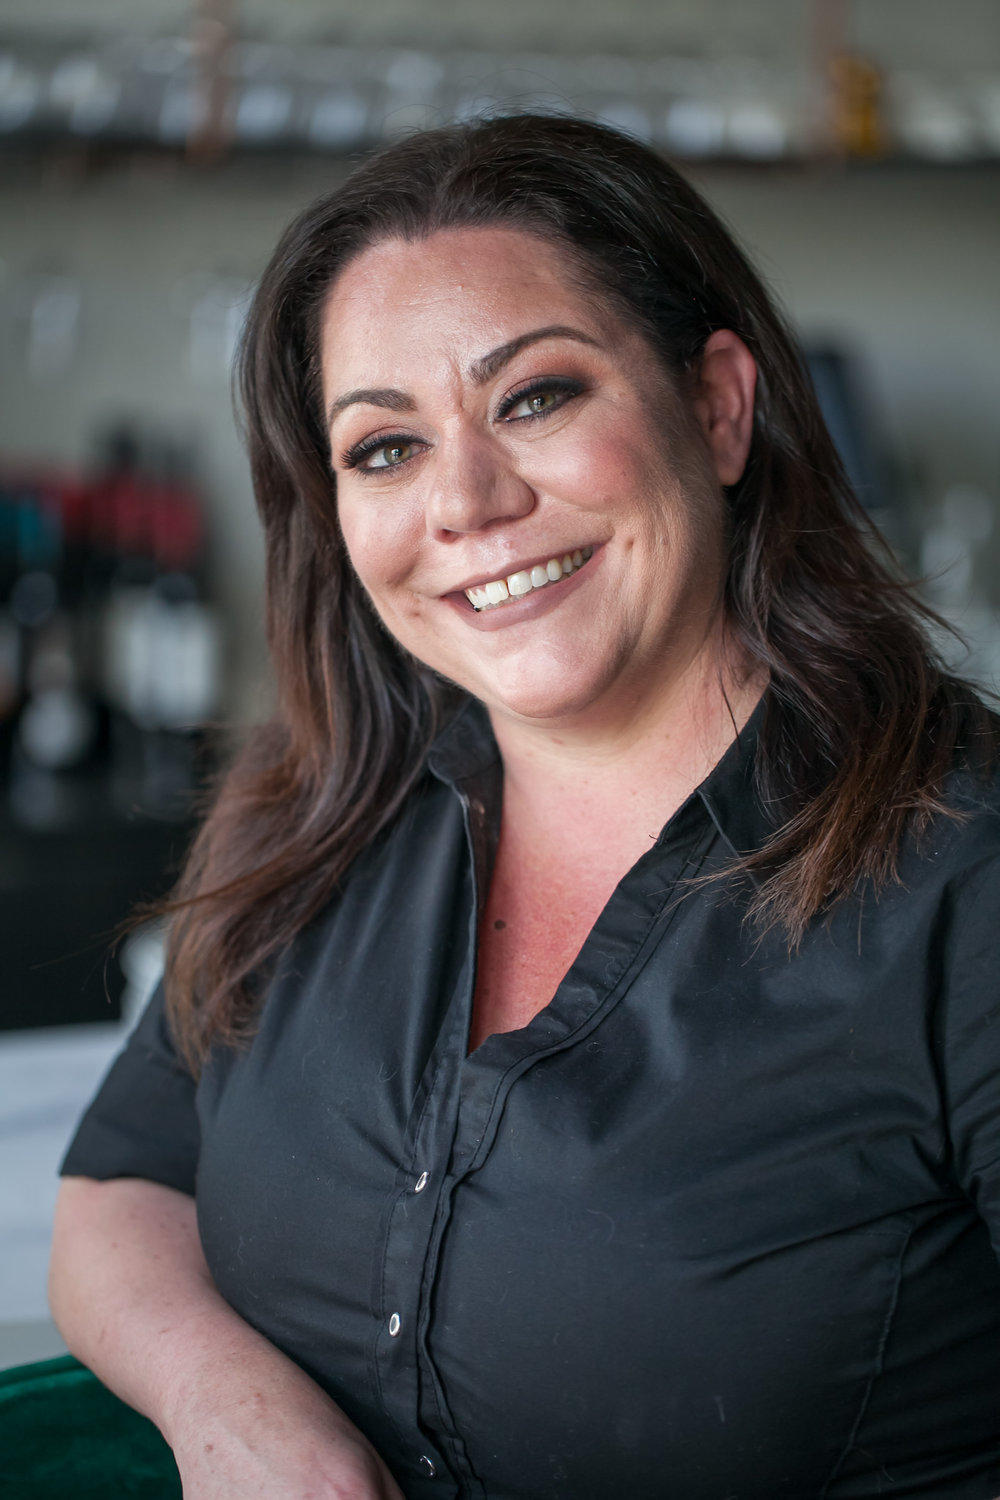 SARINA KIERNAN, BAR MANAGER: Born in New York, and living in South Florida since 1981, Sarina's experience in the food and beverage industry spans more than 25 years. She is especially drawn to opening of new concepts and to date she has been on the opening team for six concept establishments. Sarina continues to increase her industry knowledge through individual study and mentorship. Most notably, she is currently studying to be a Sommelier.